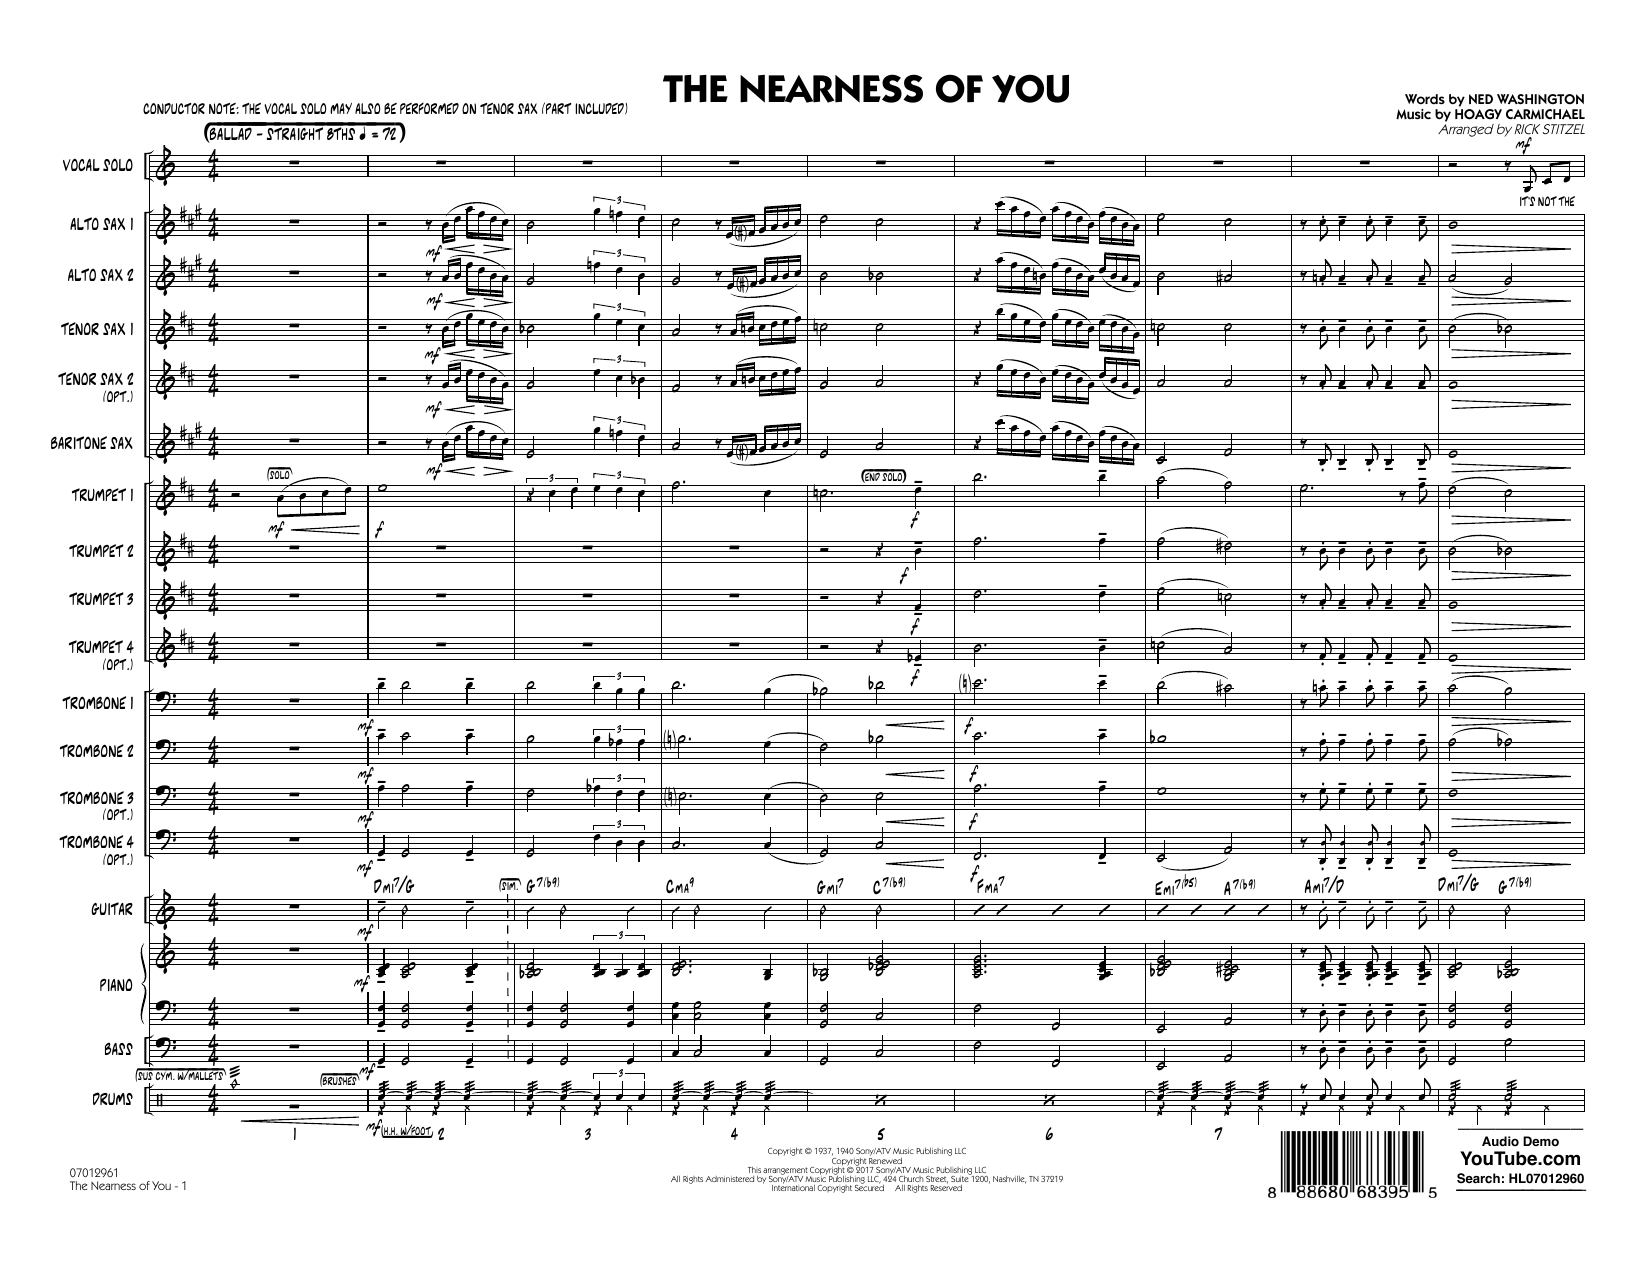 George Shearing - The Nearness of You (Key: C) - Conductor Score (Full Score)